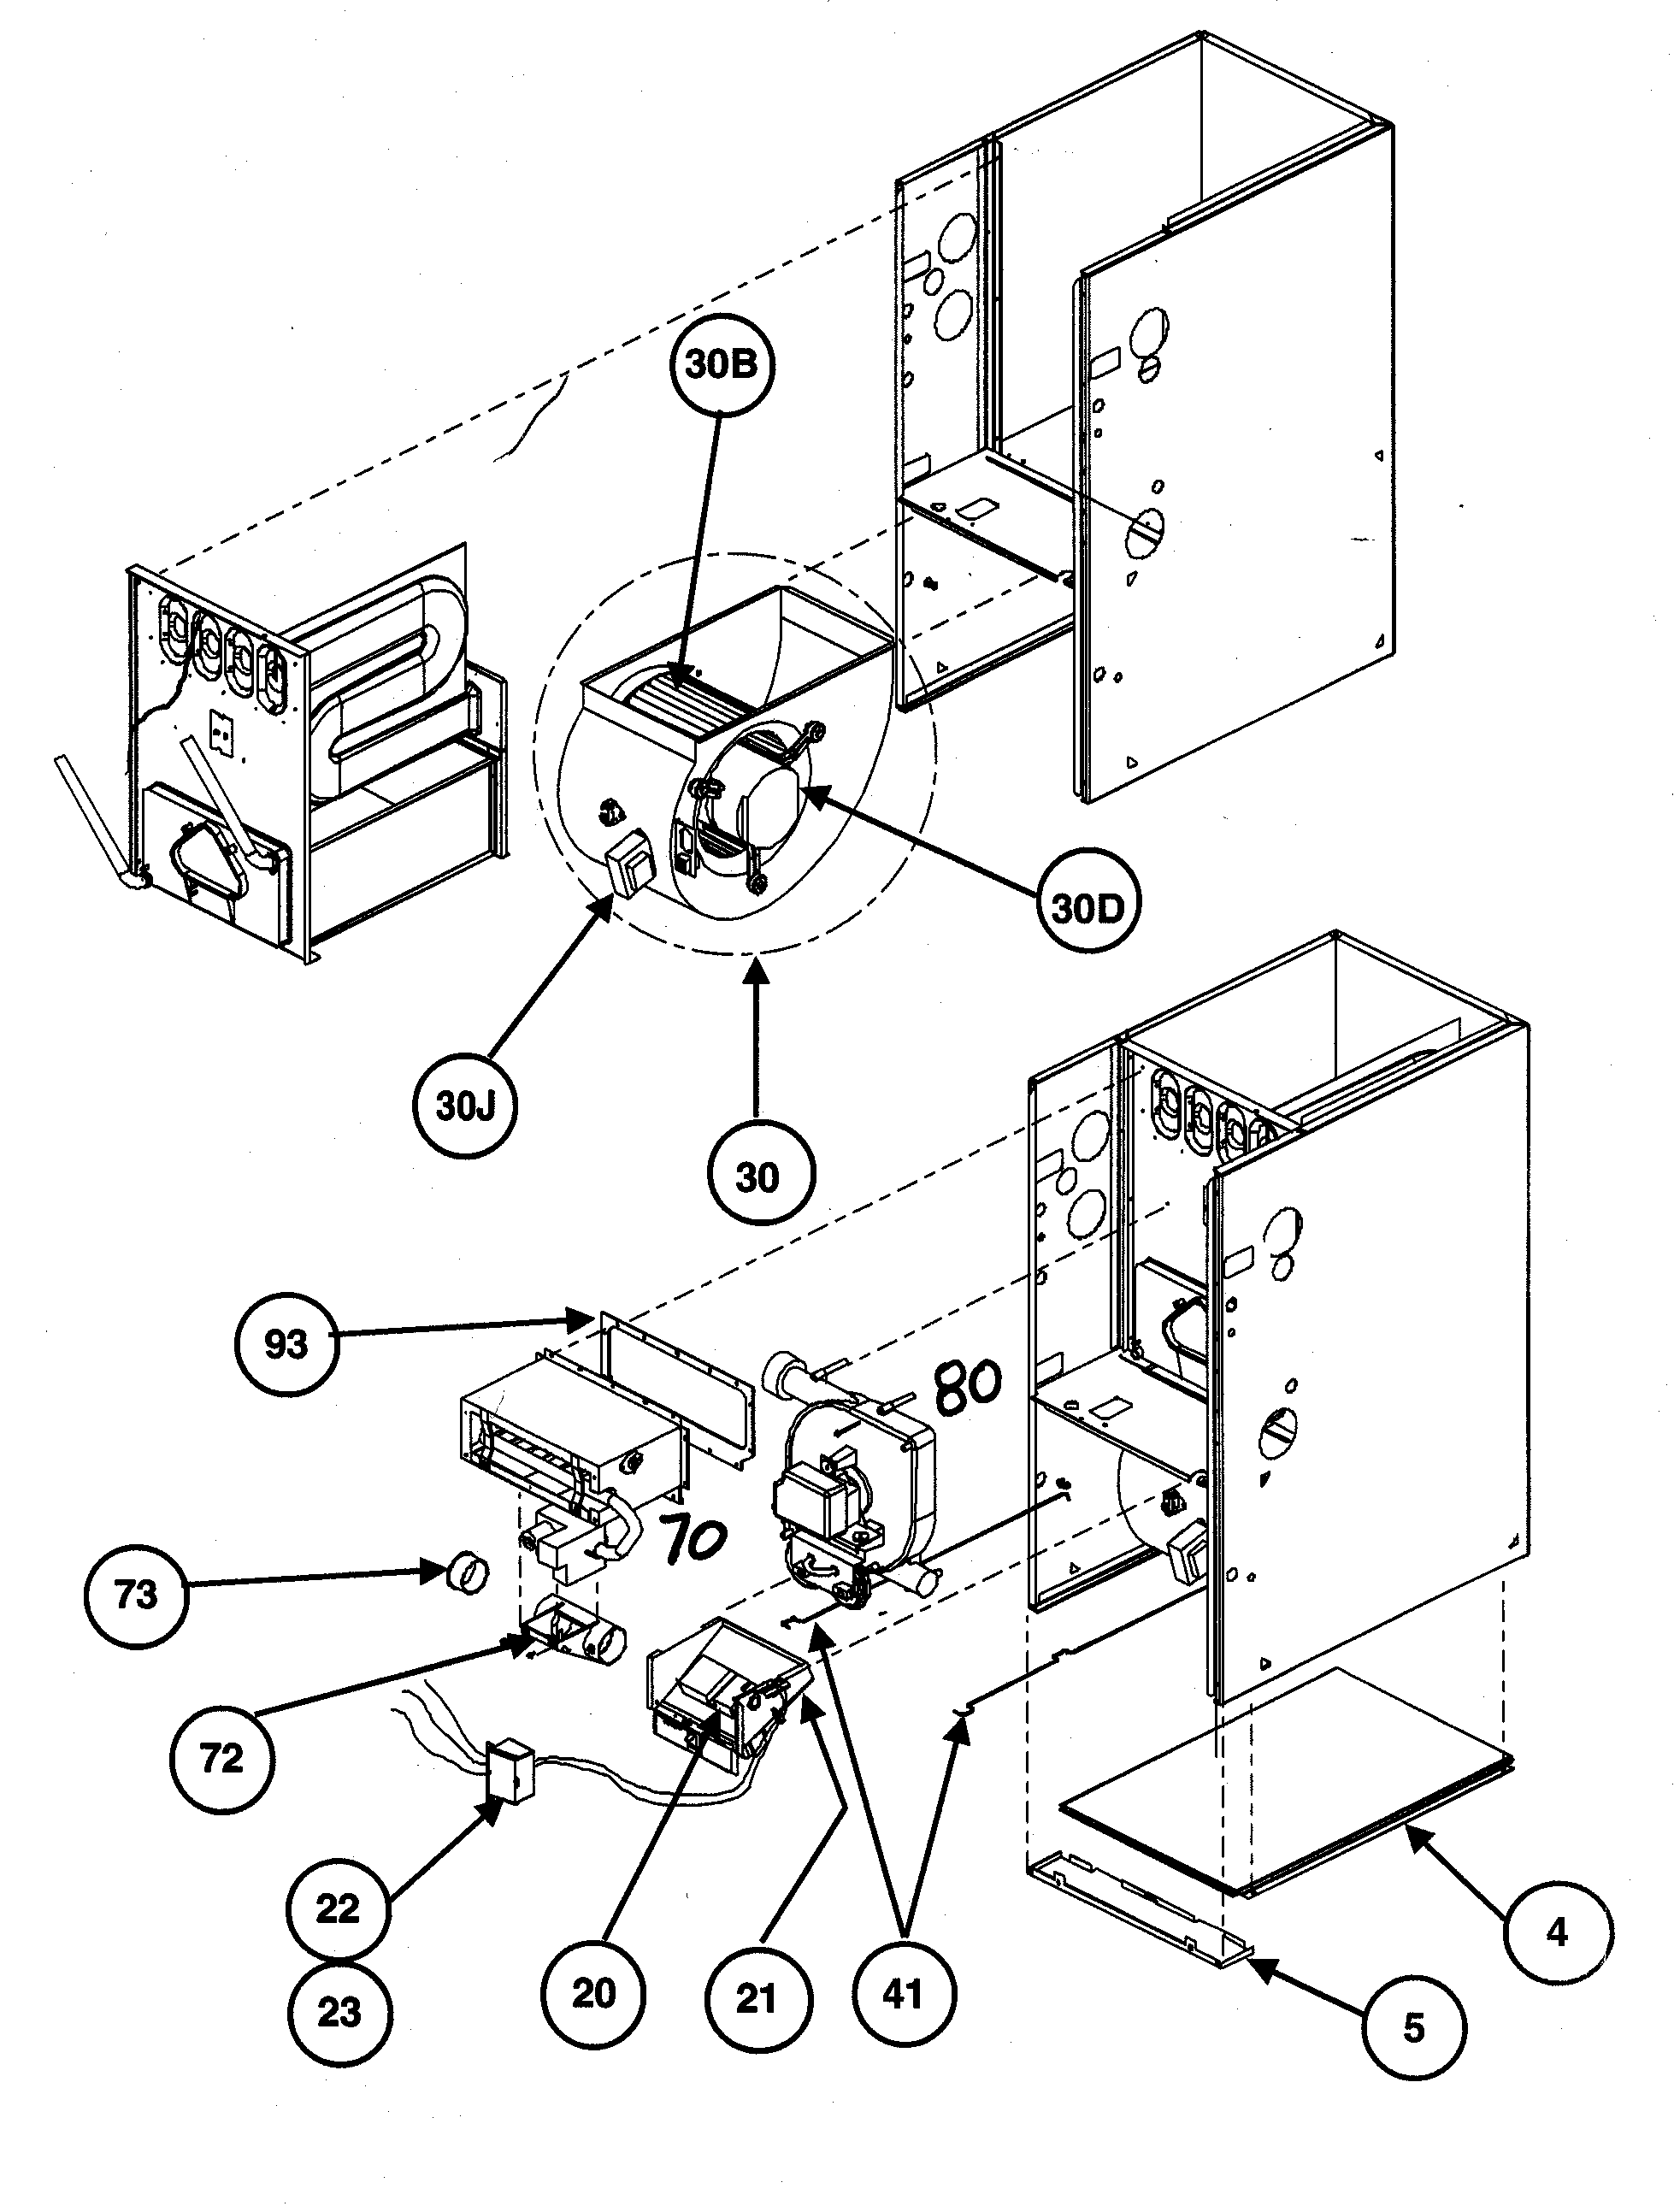 Intertherm Furnace Wiring Diagram Pdf Hydrotherm Furnace